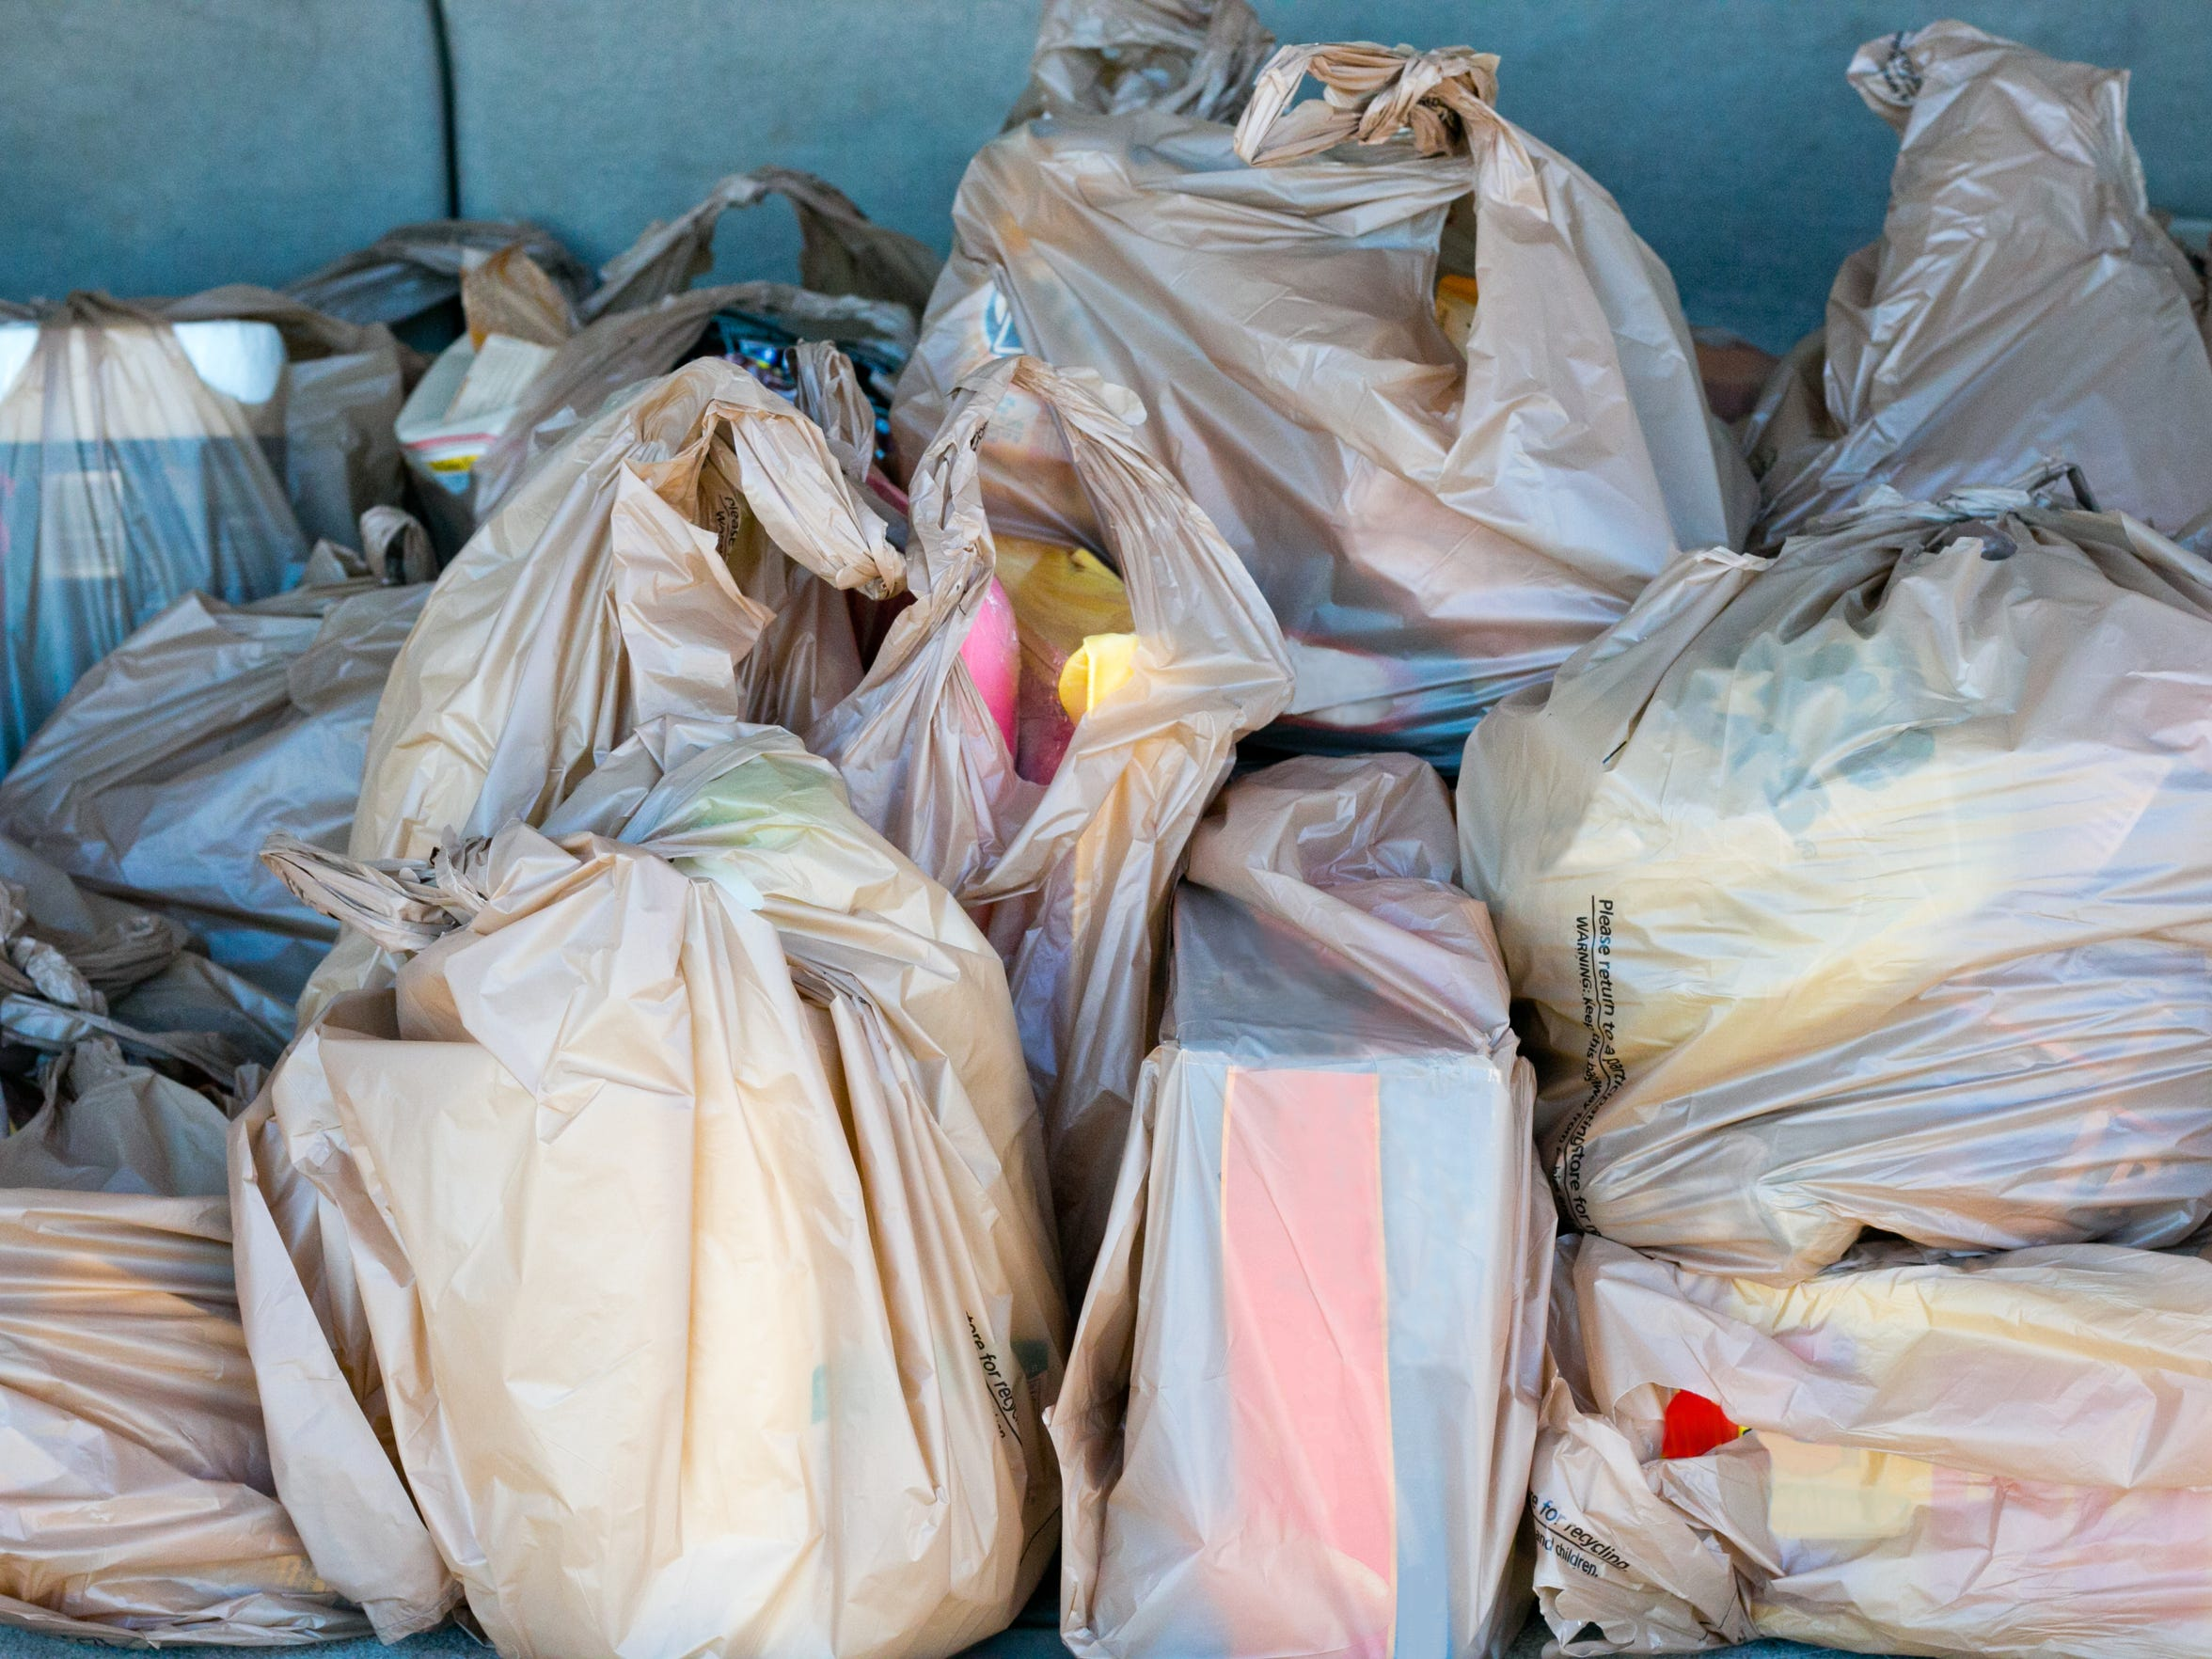 Households account for 43 percent of all food waste.